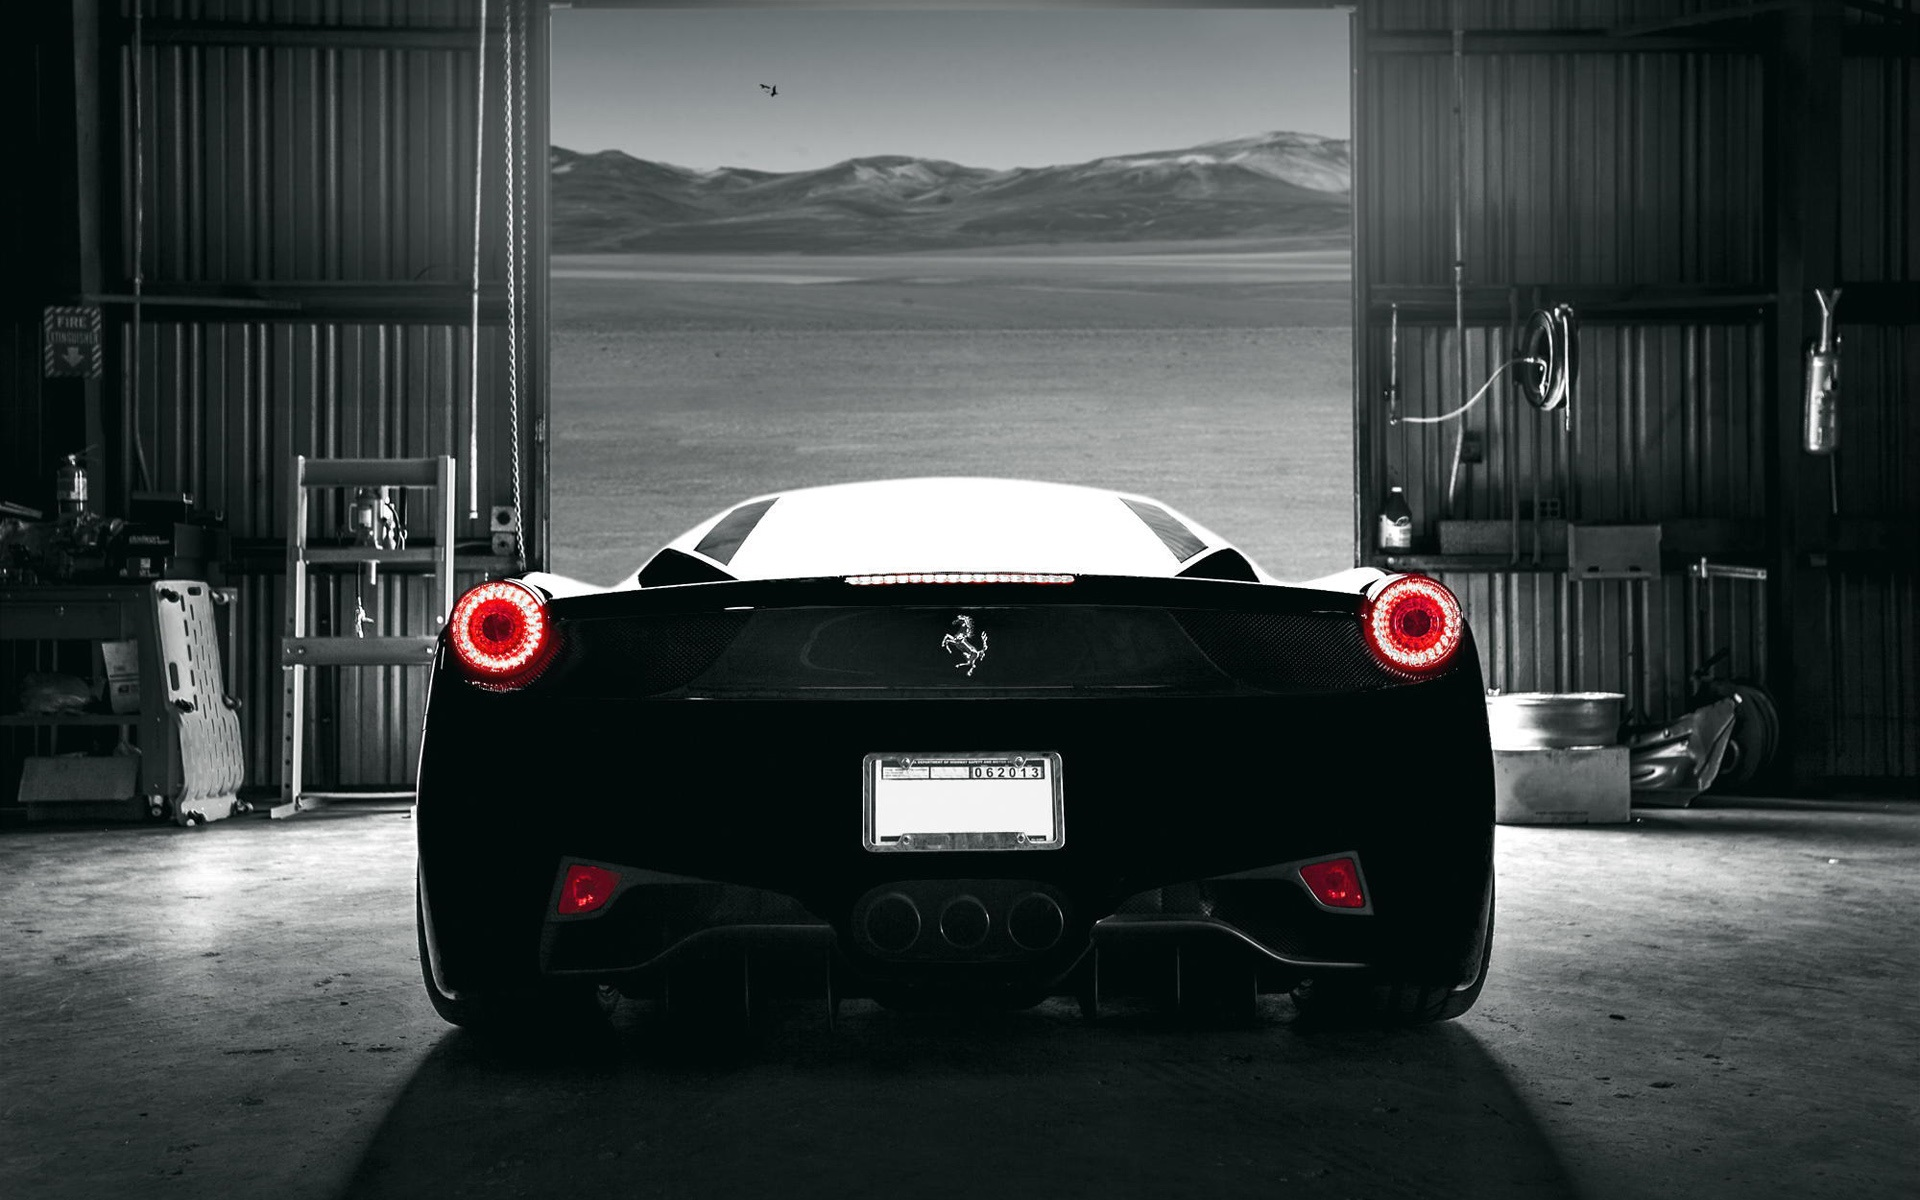 Ferrari 458 Italia Wallpapers Archives Page 6 Of 6 Hd